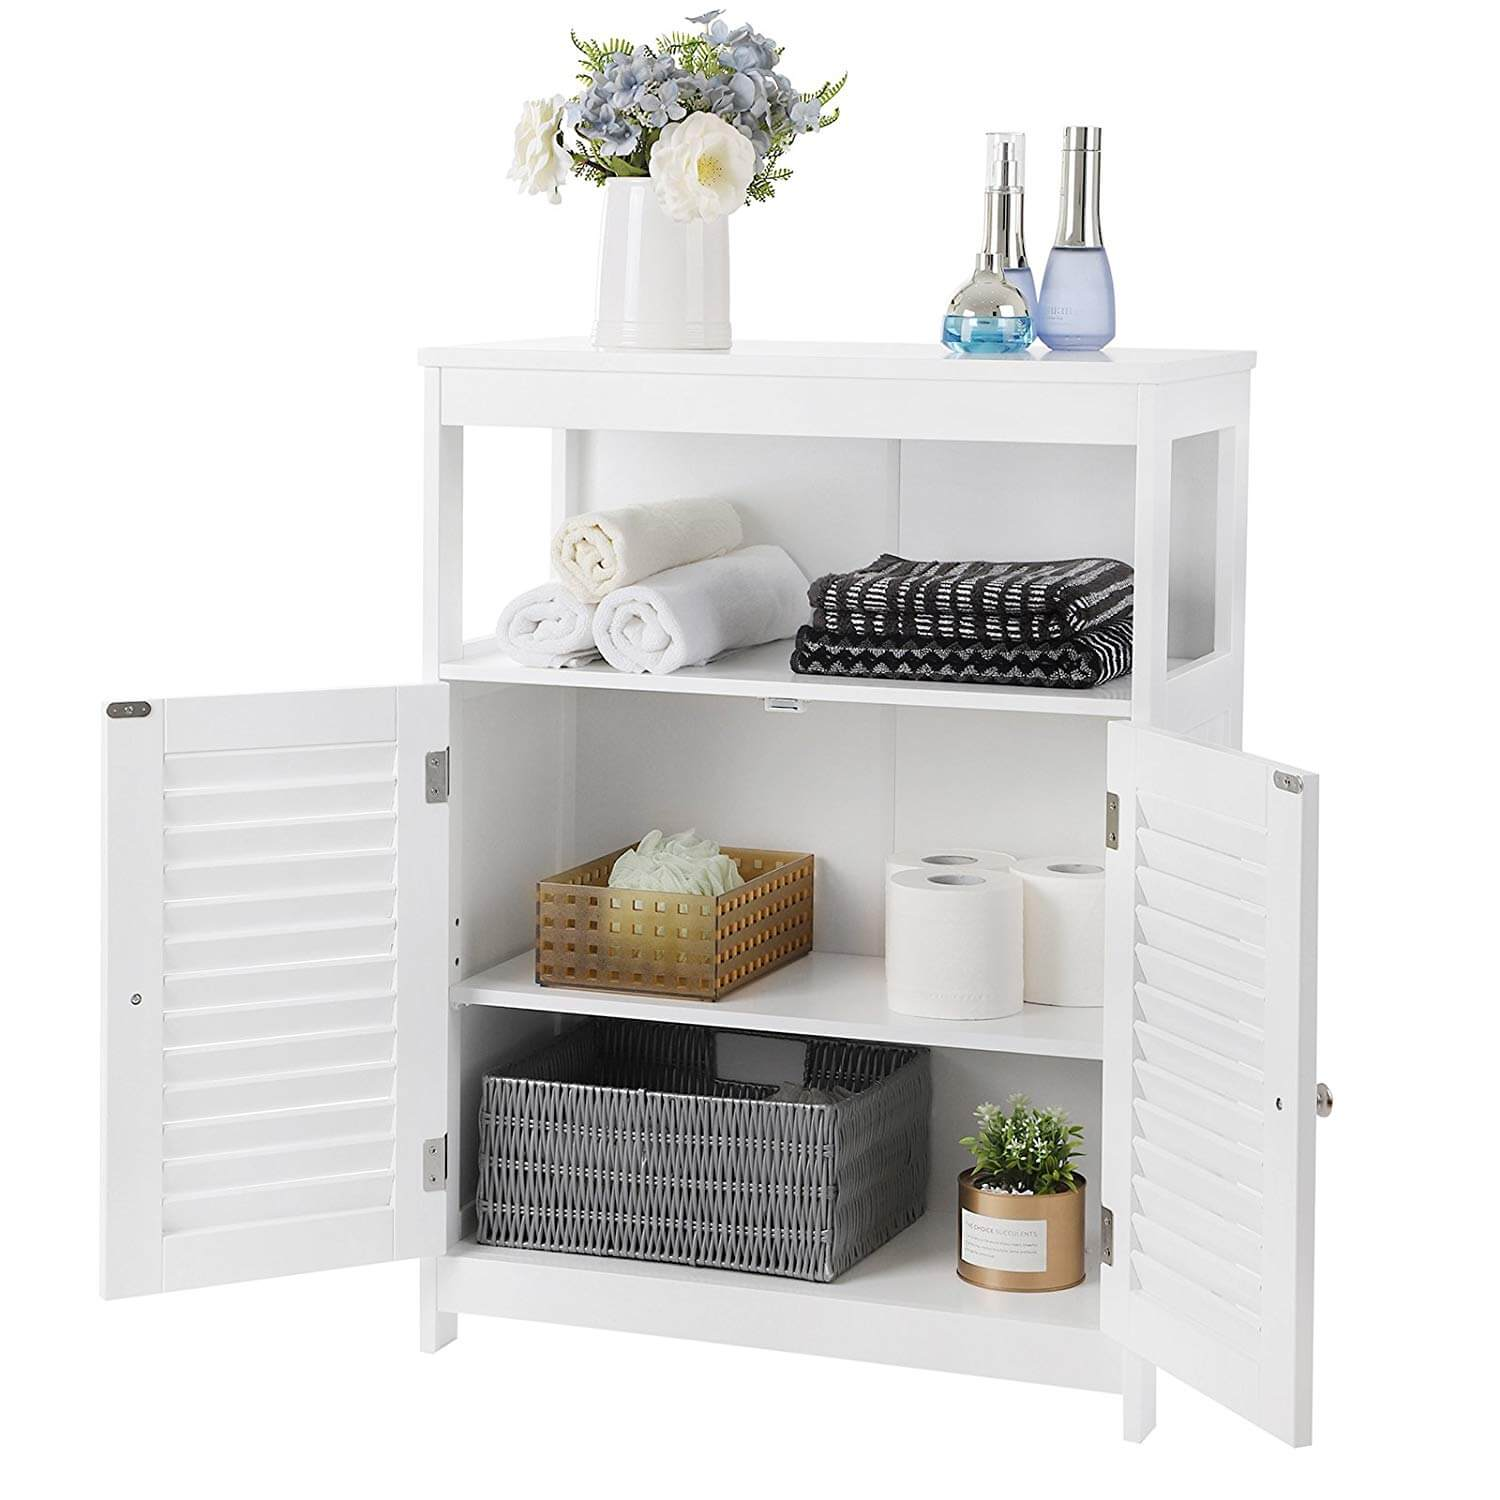 Free Standing Bathroom Cabinet with Shutter Style Doors